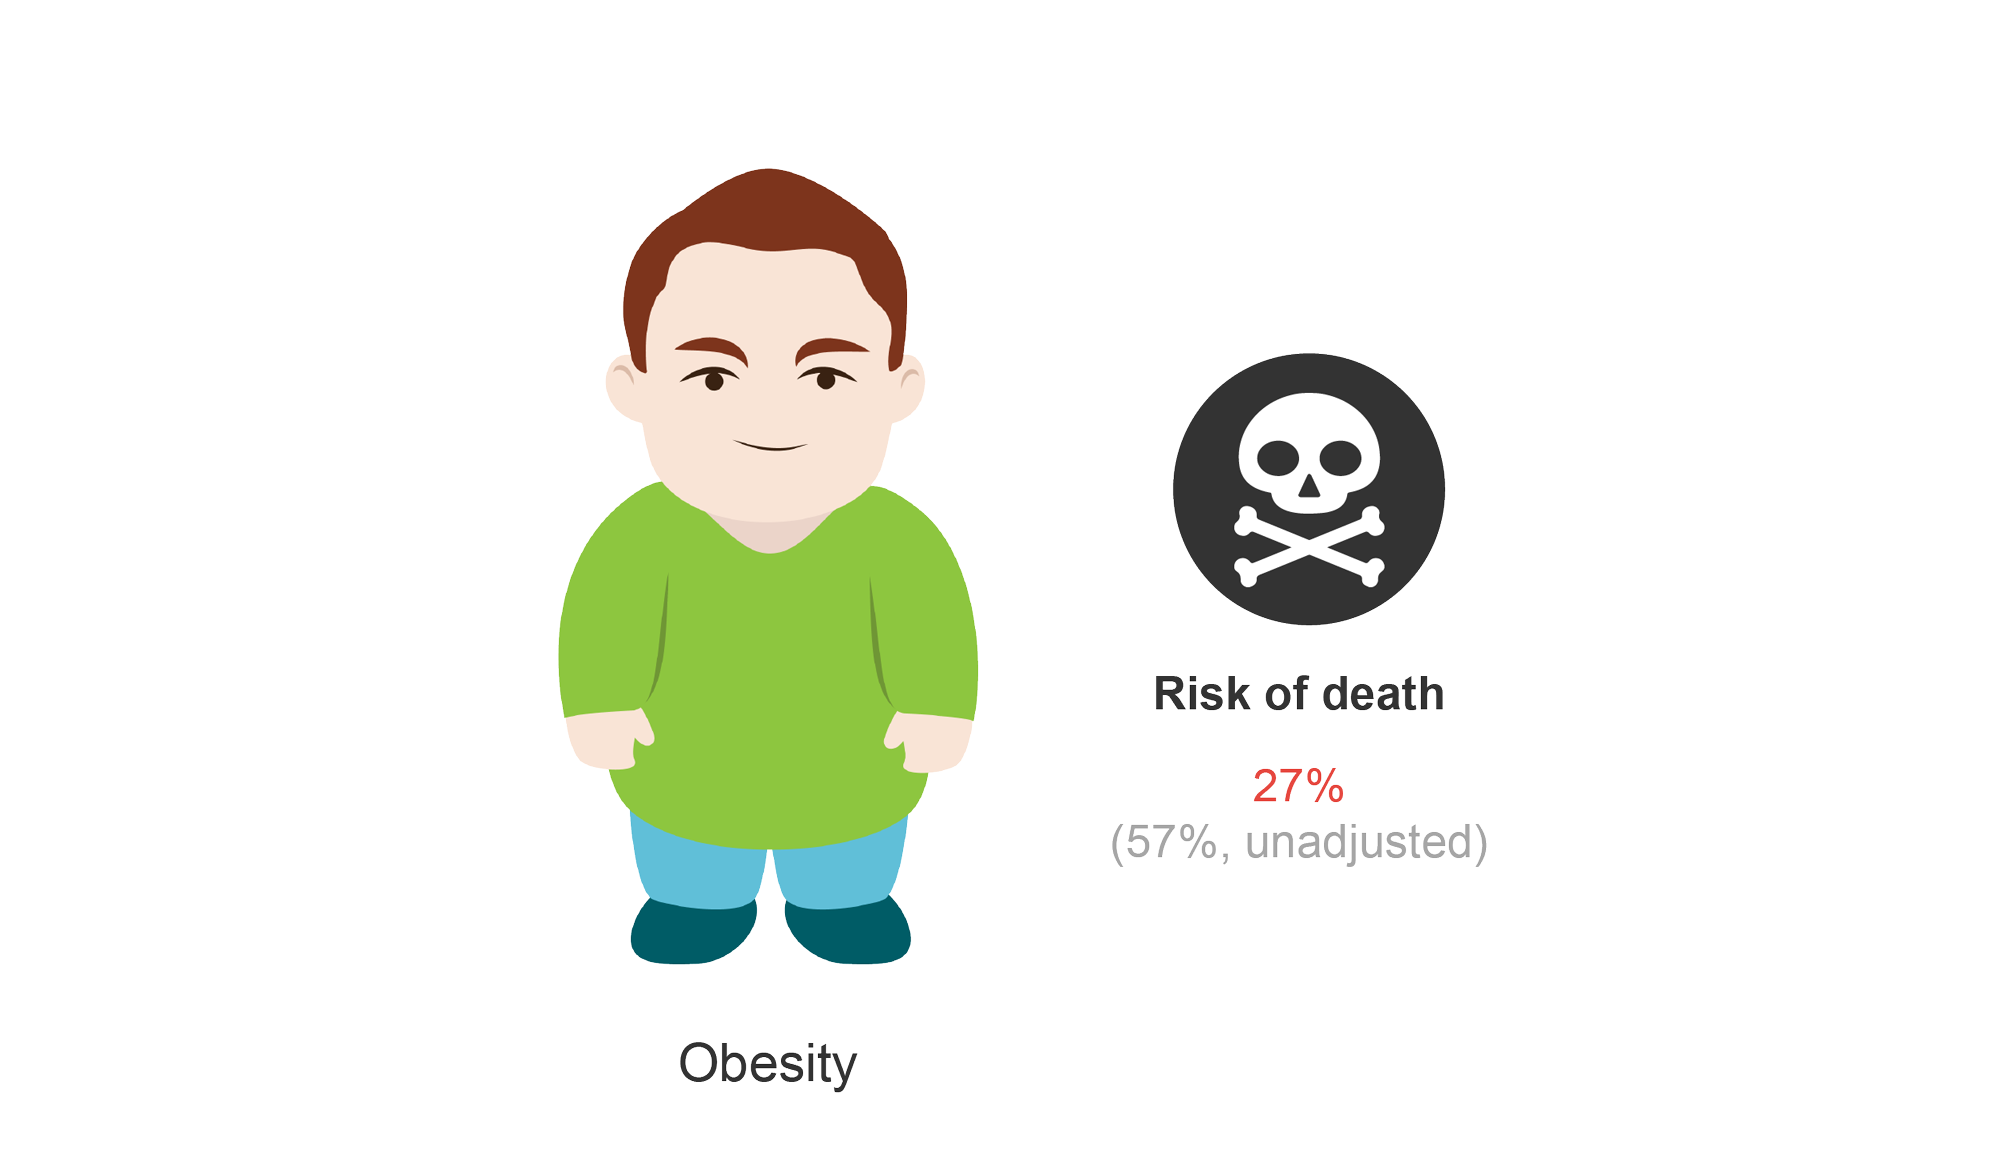 Obese patient and risk of death (27%). Cartoon